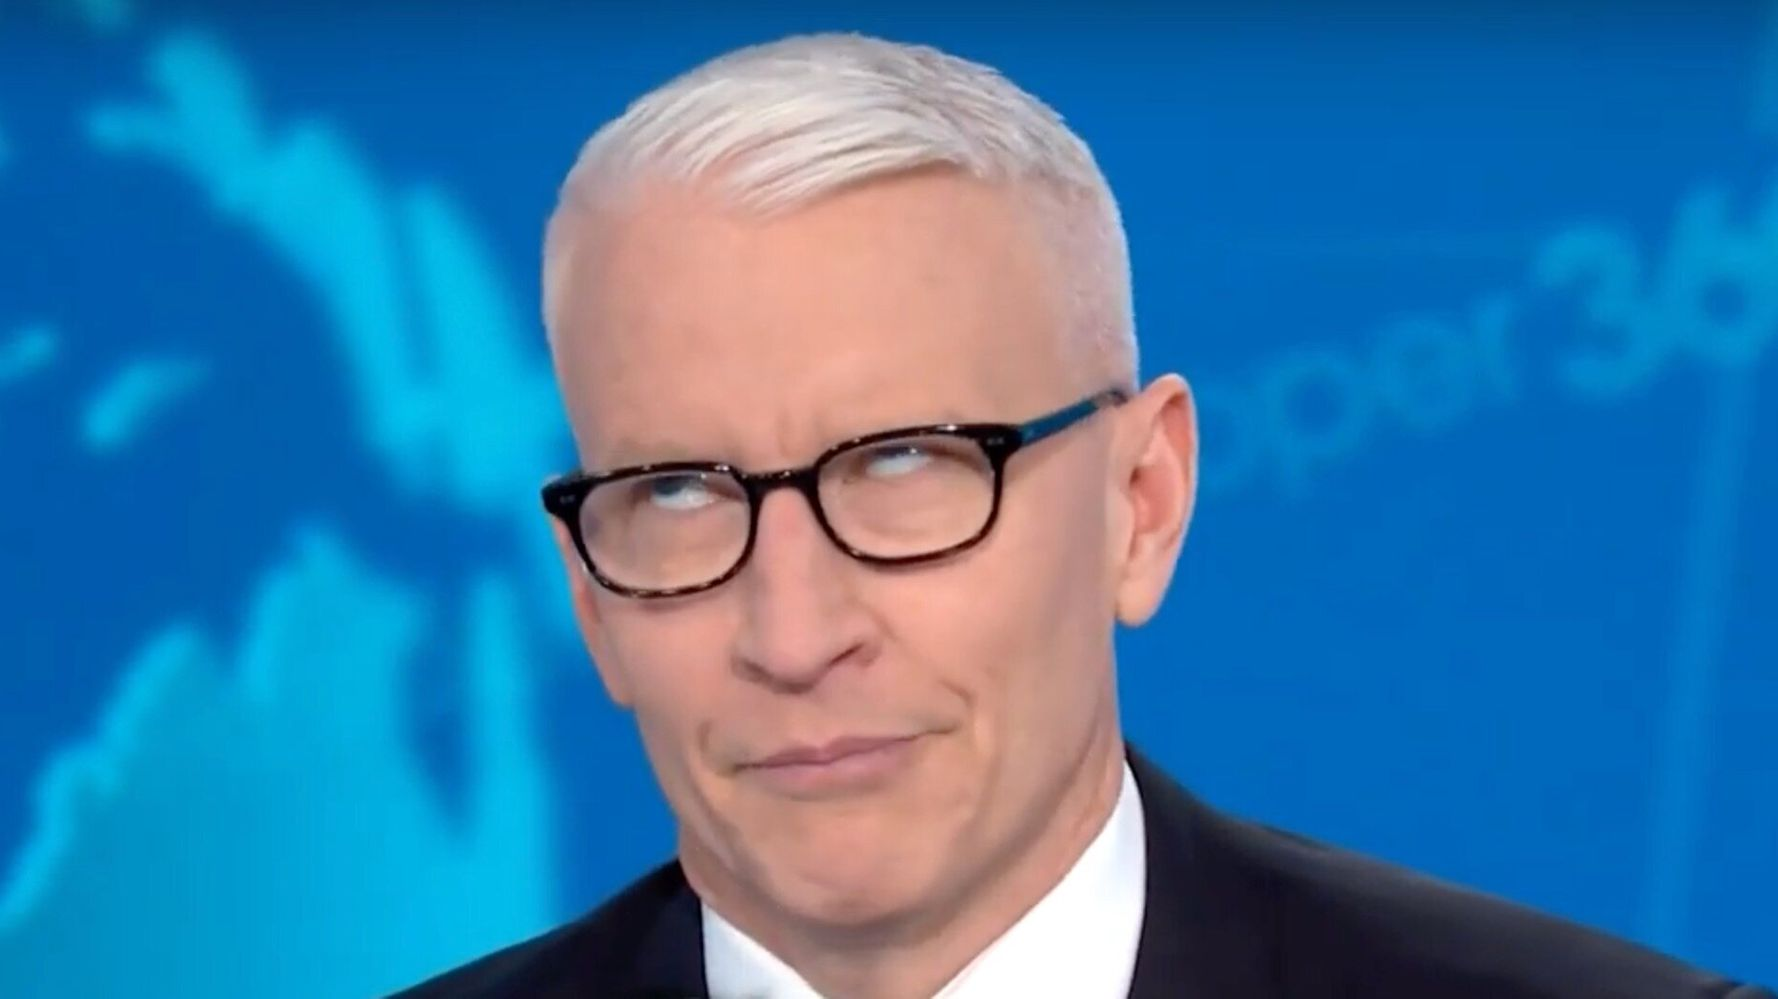 Westlake Legal Group 5da969372000008e115060b5 Anderson Cooper's Face Says It All As Trump Awards G-7 Meeting To His Own Resort